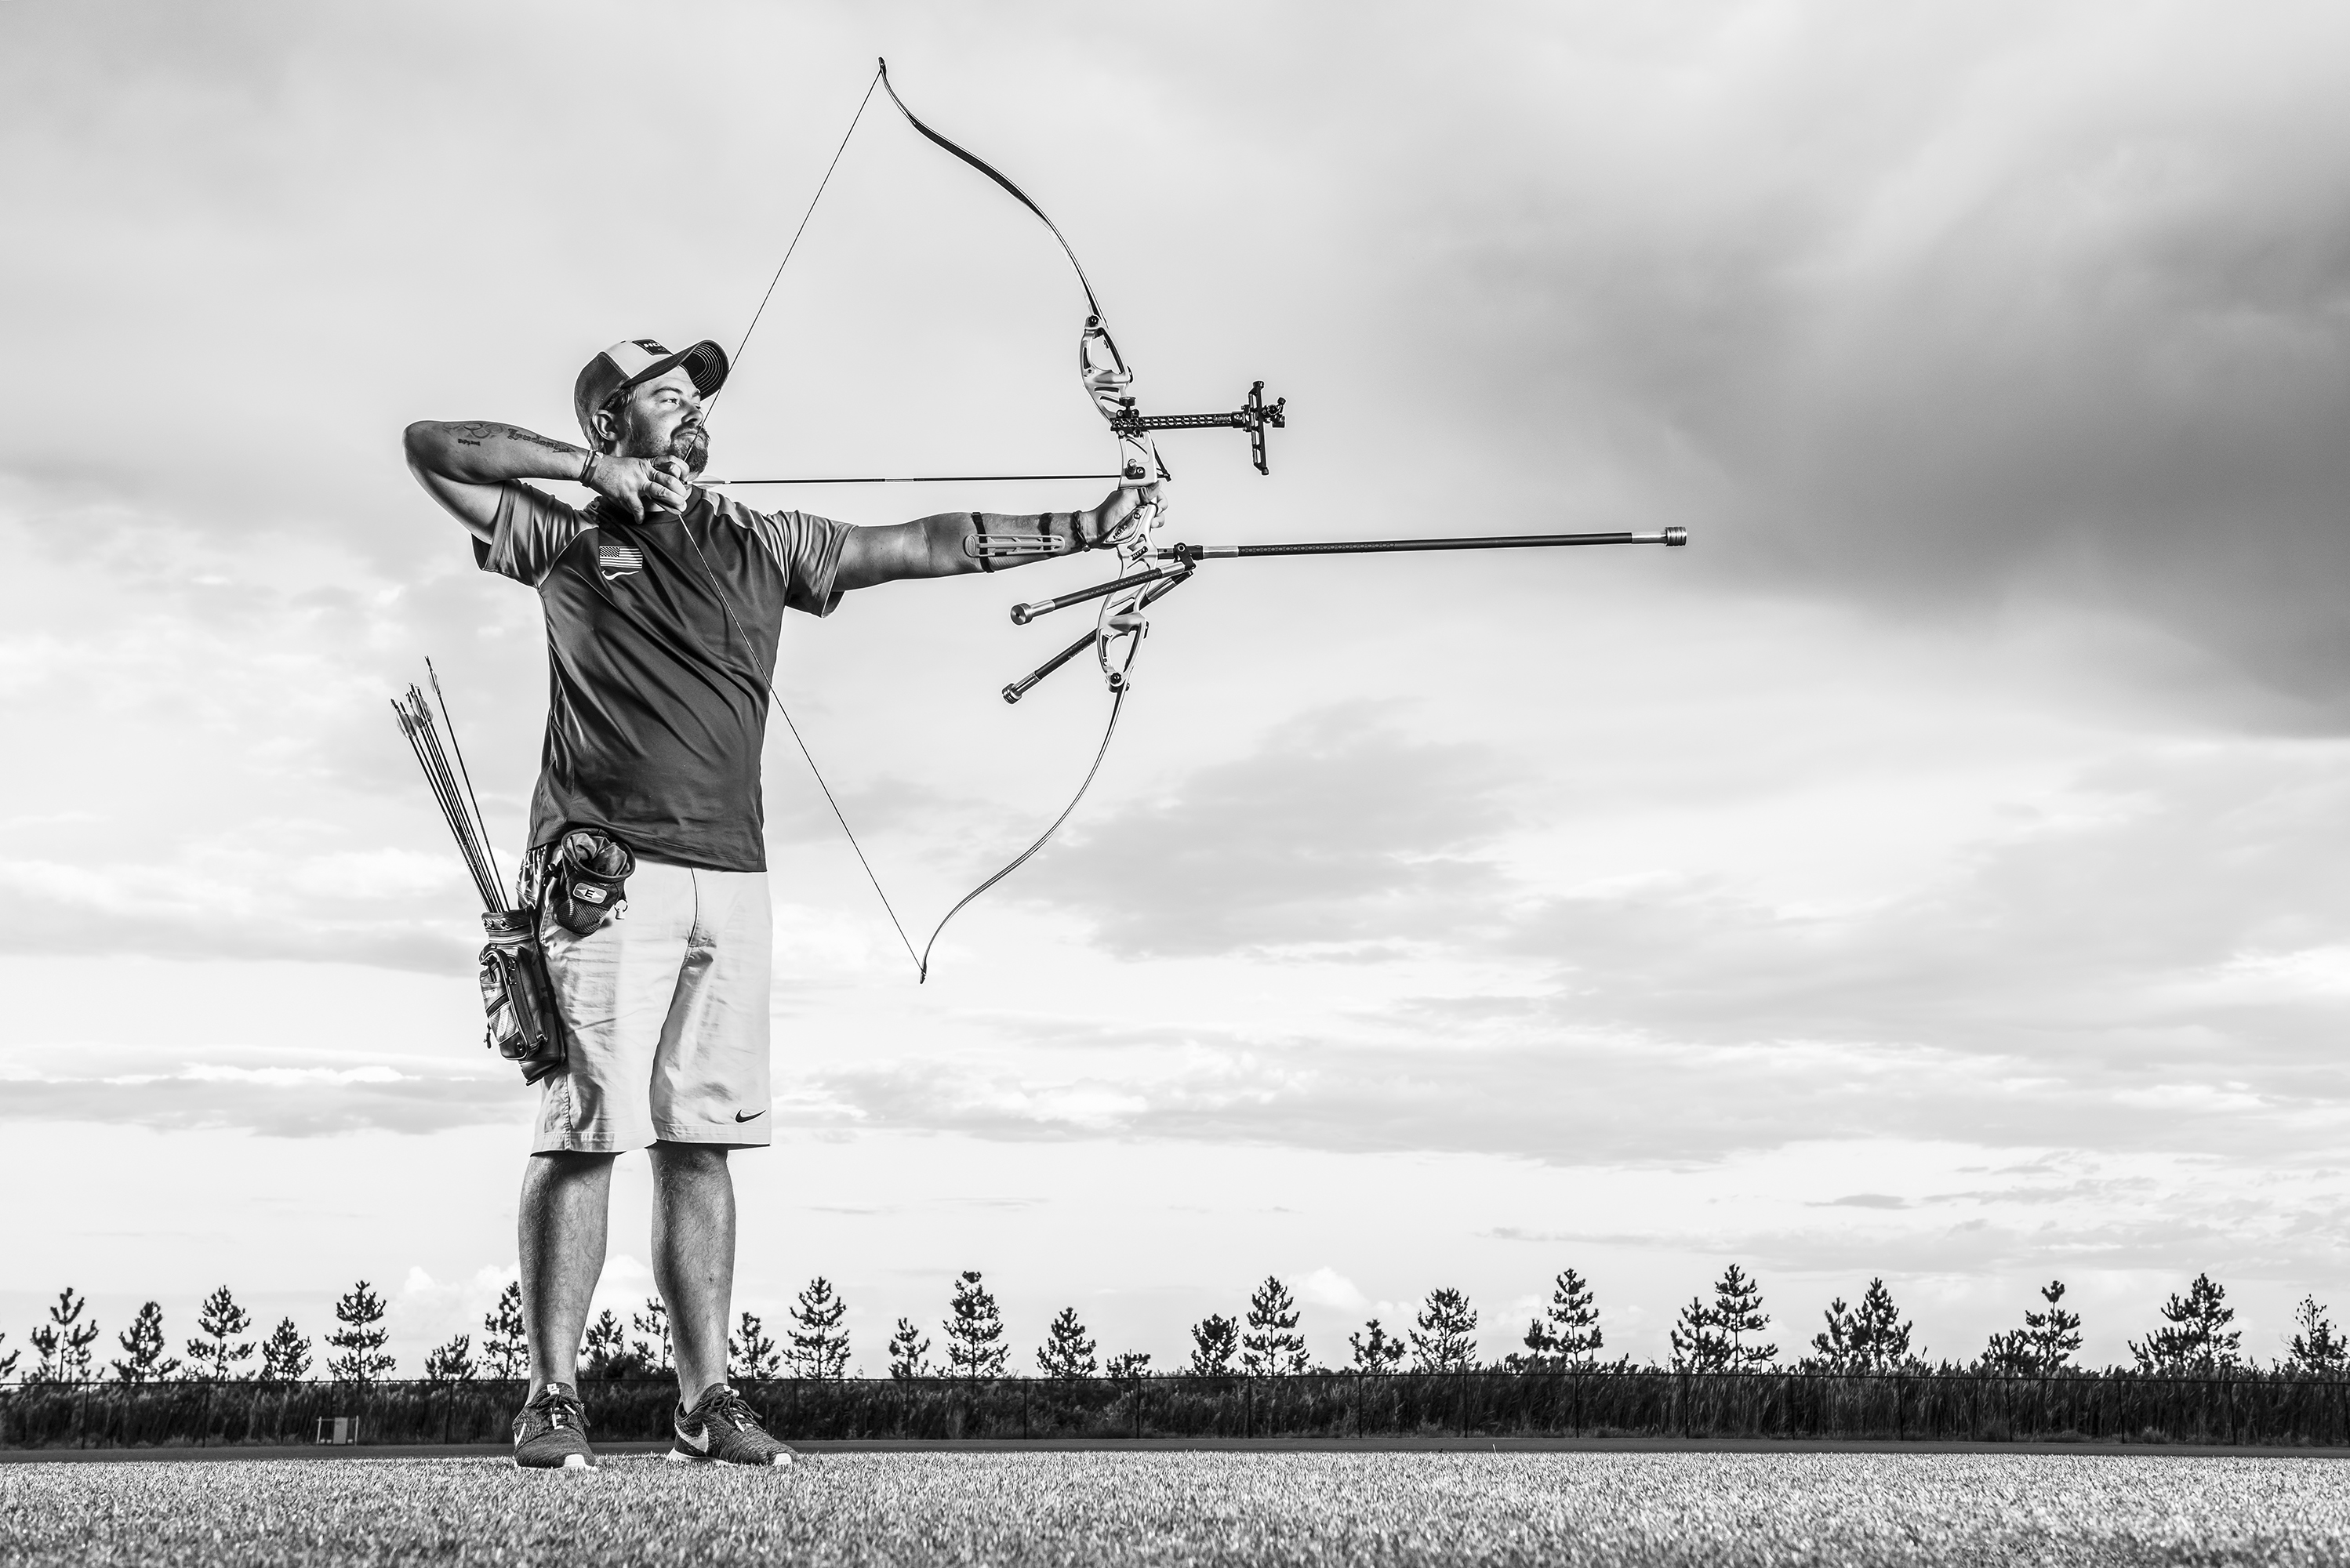 hoyt archery olympic champions to rambo katniss to the avengers they all rely on utah made hoyt archery bows now that is cool